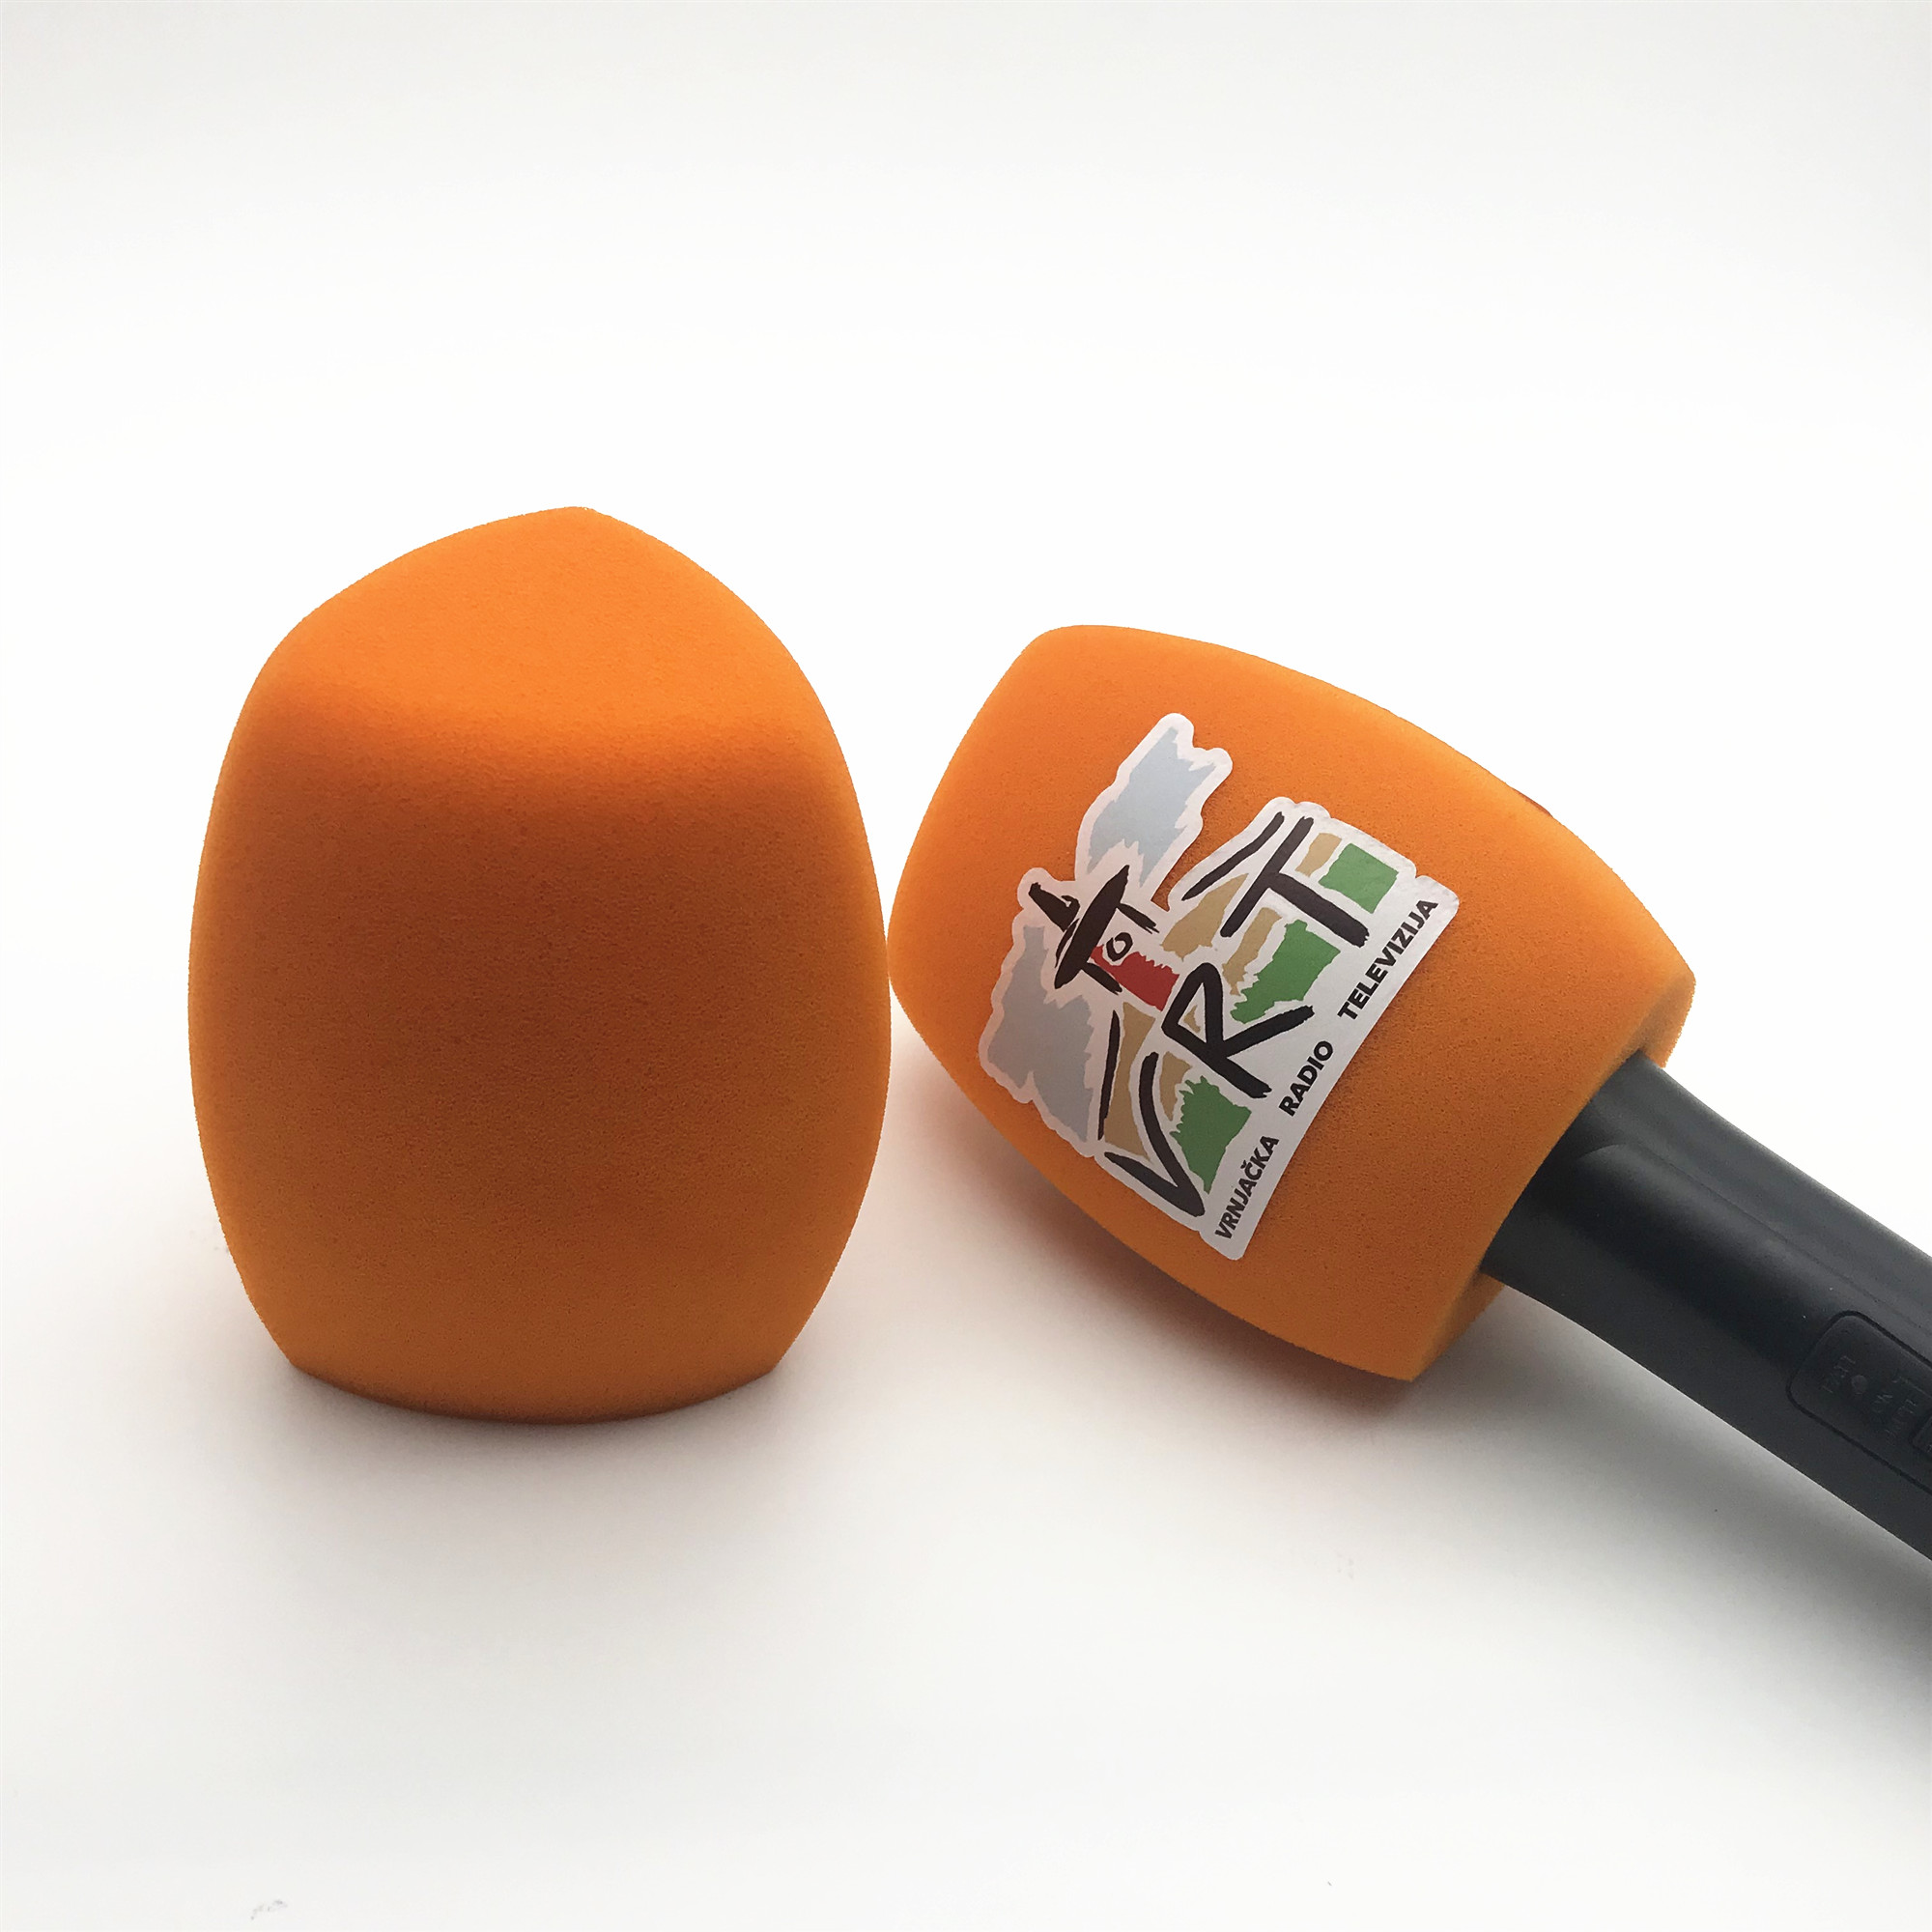 Linhuipad O15 Orange Color Microphone Windscreens Customize Logo Handheld Windshield For Sennheiser Microphone 4CM(1.57in)